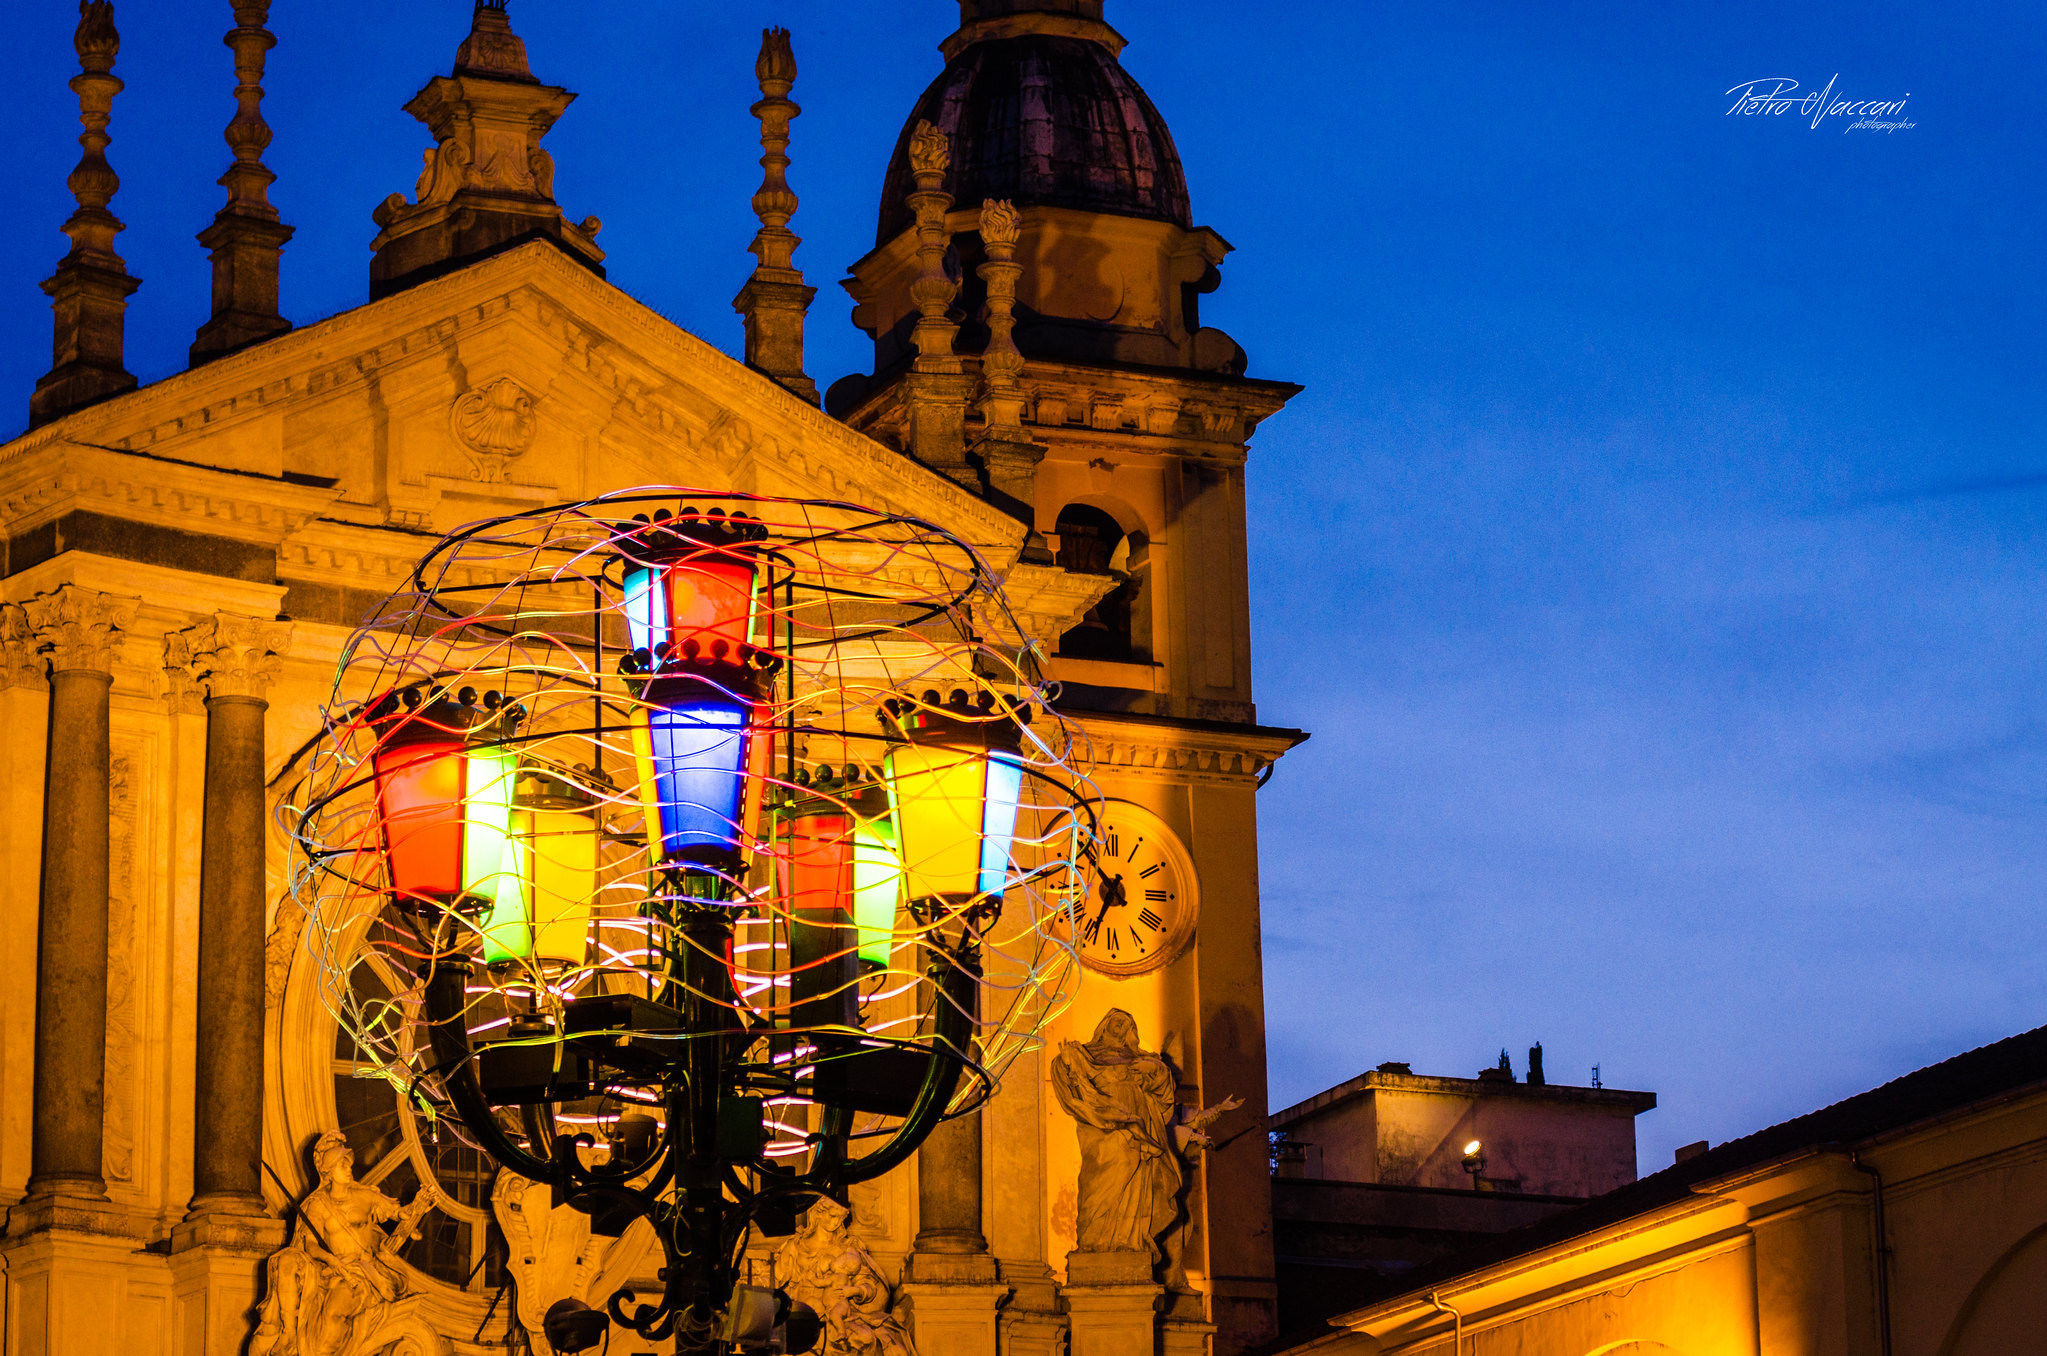 Artist lights in the St. Carlo Square